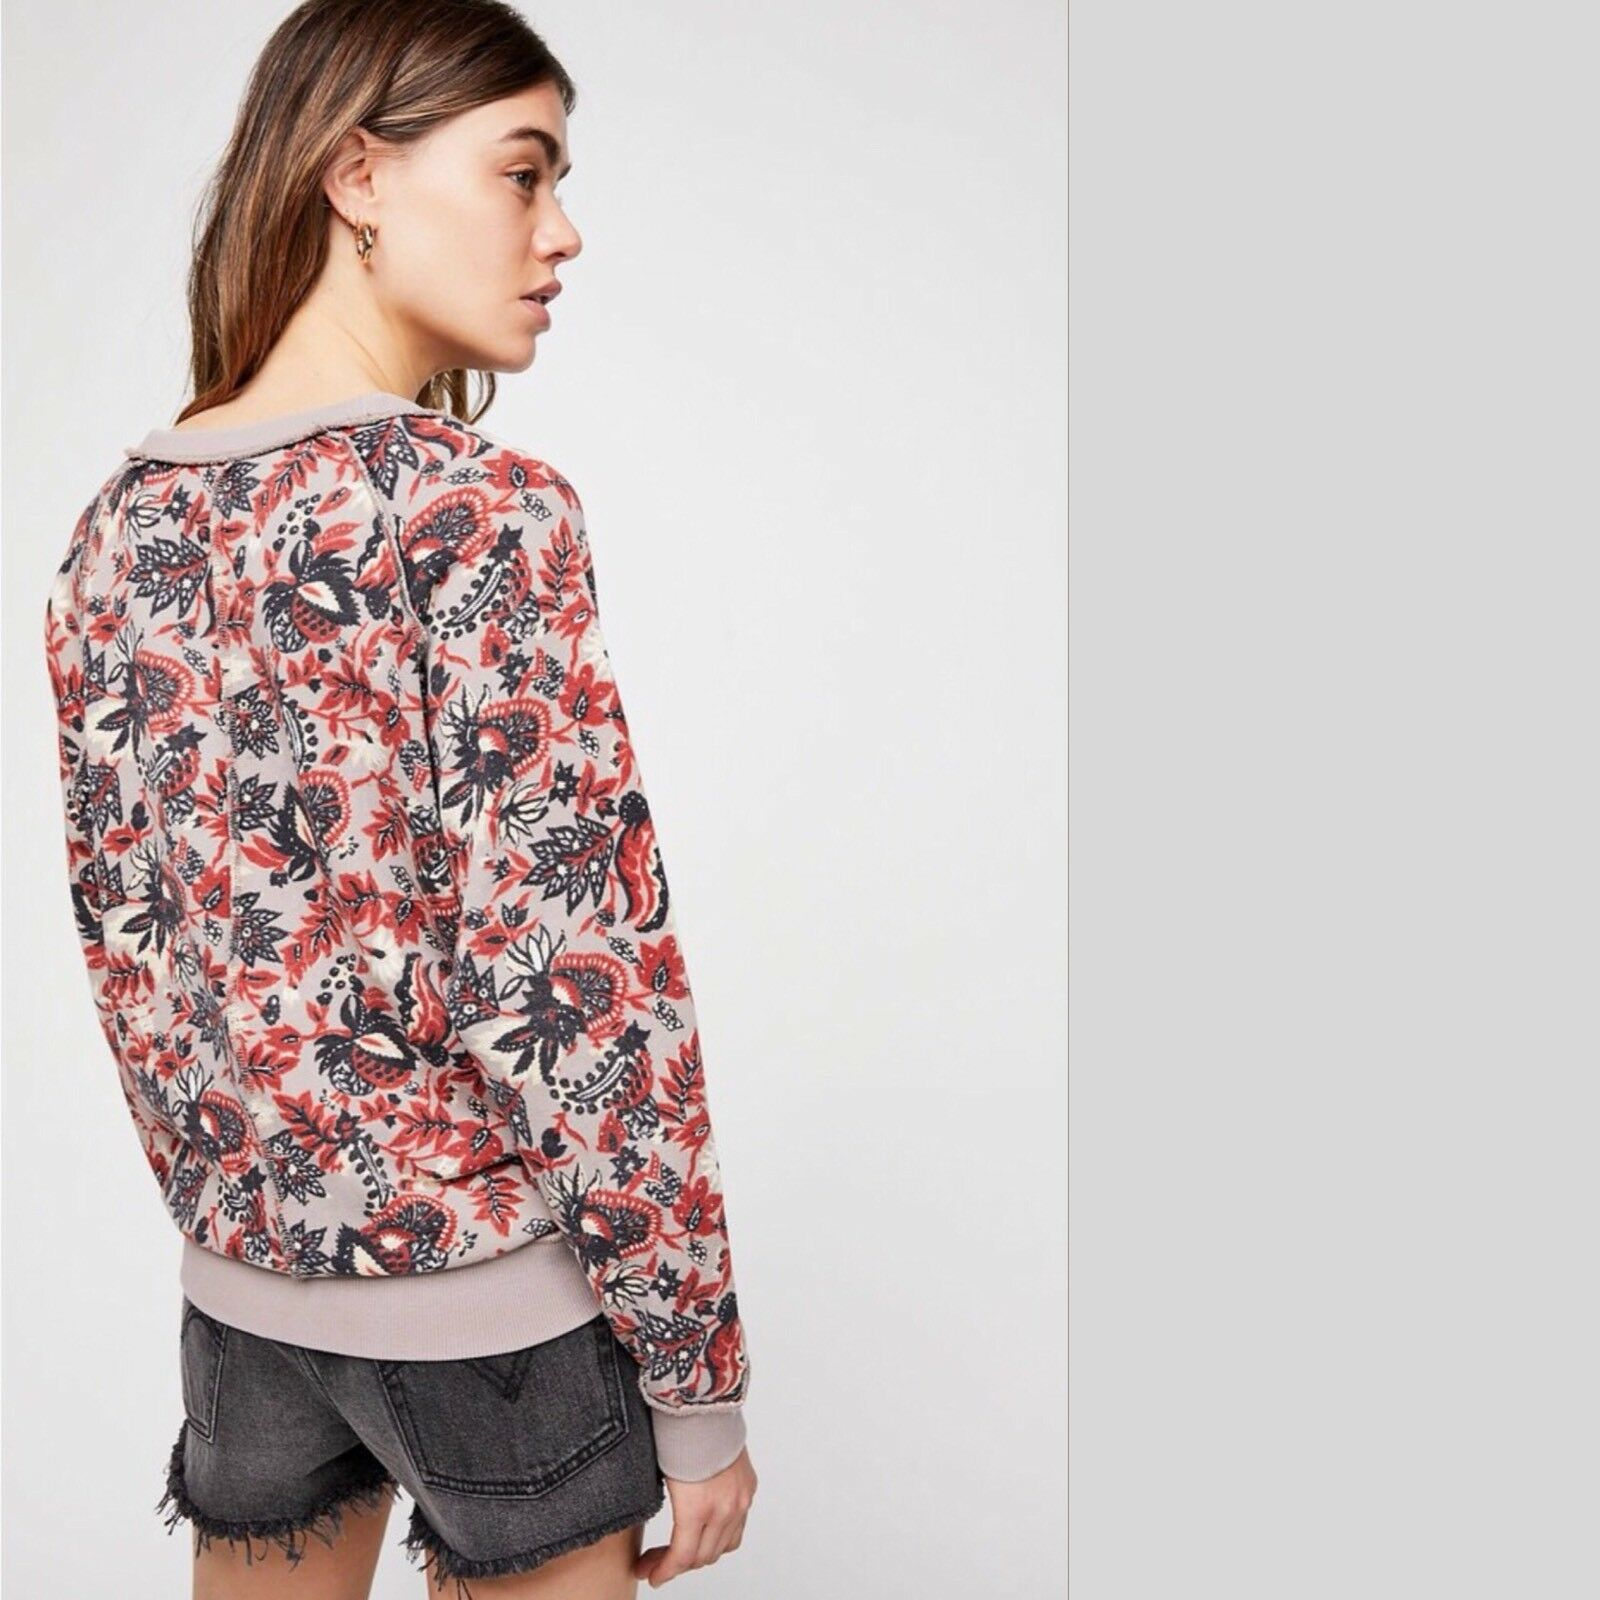 NWT FREE PEOPLE Go on Get Floral Top  Sweatshirt Taupe Small S OB560860